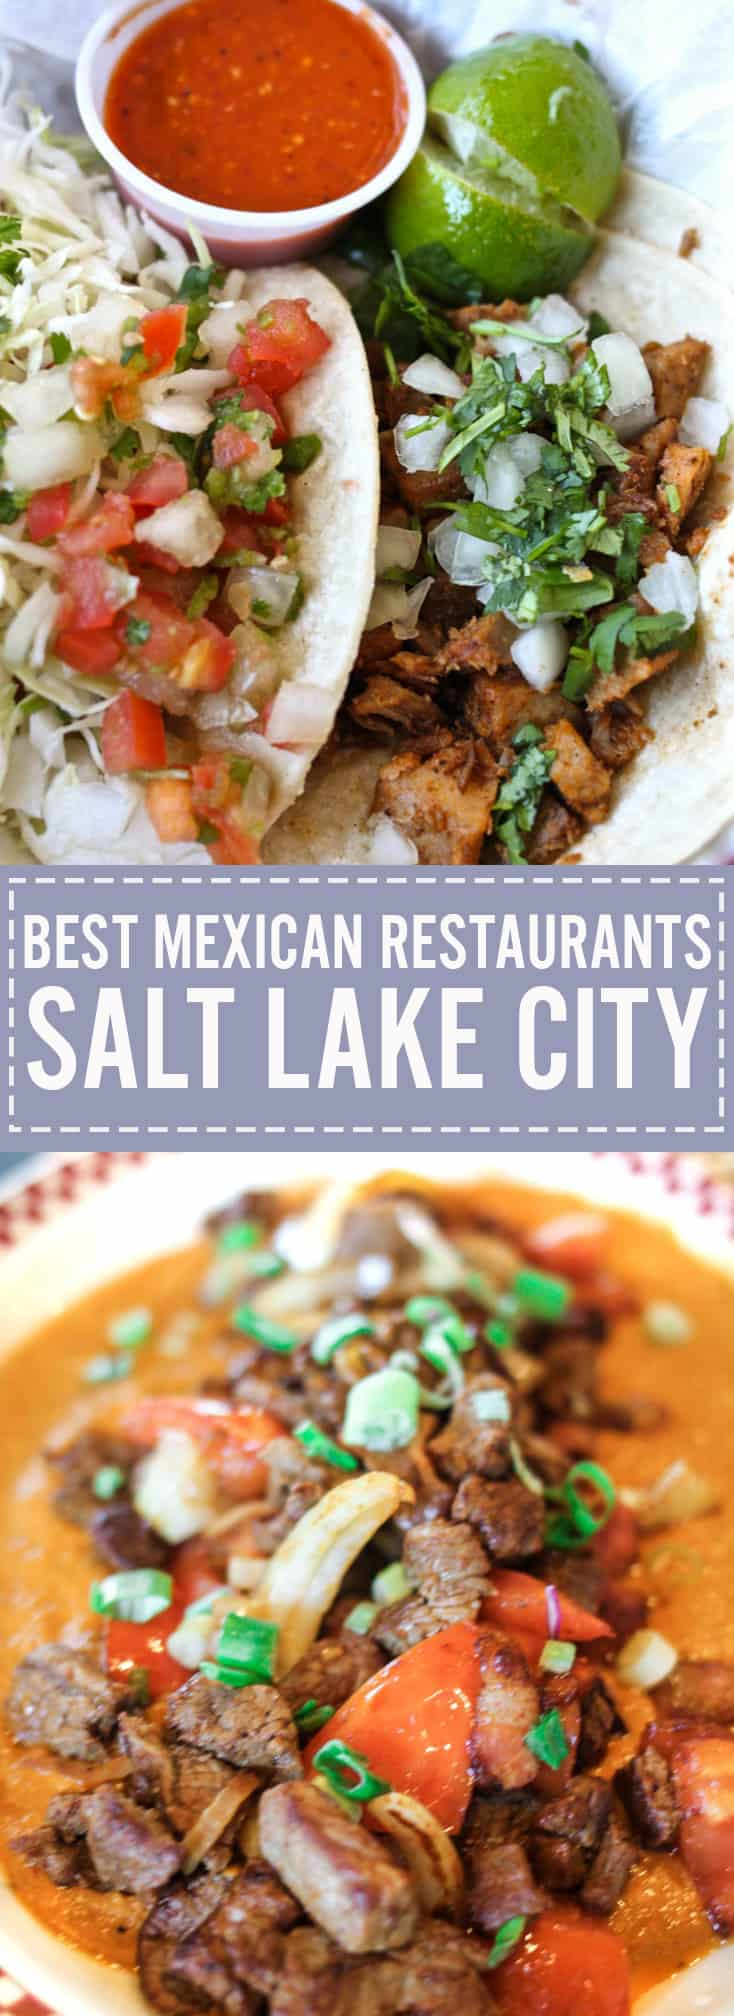 A full post on list of restaurants for the best Mexican food in Salt Lake City. Check out our top ten at femalefoodie.com!